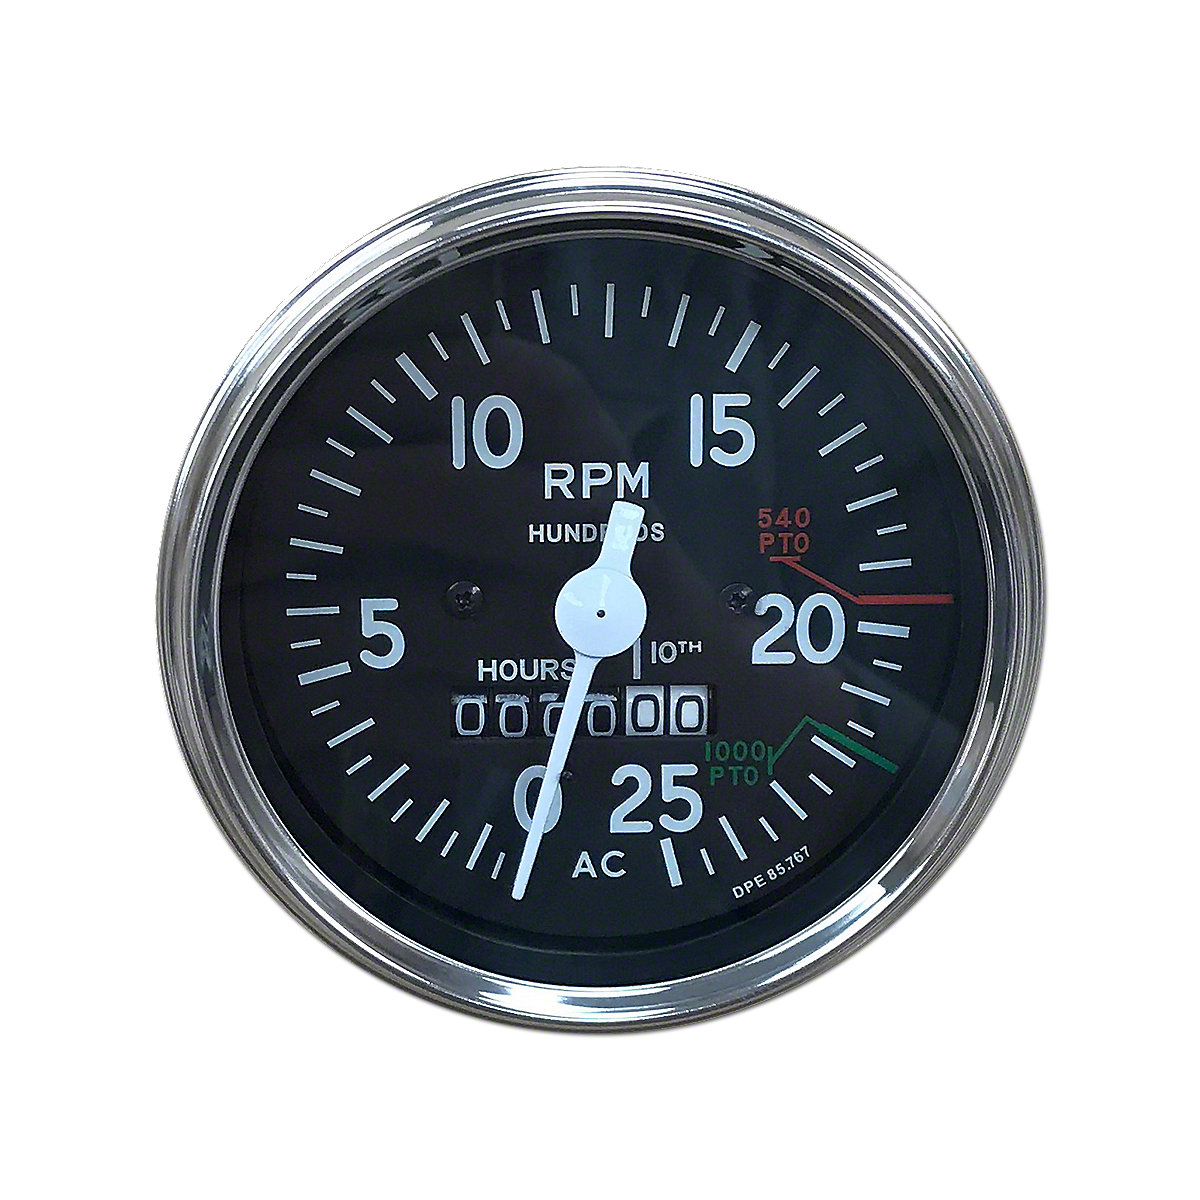 ACS303 Allis Chalmers Tachometer Or Operation Meter